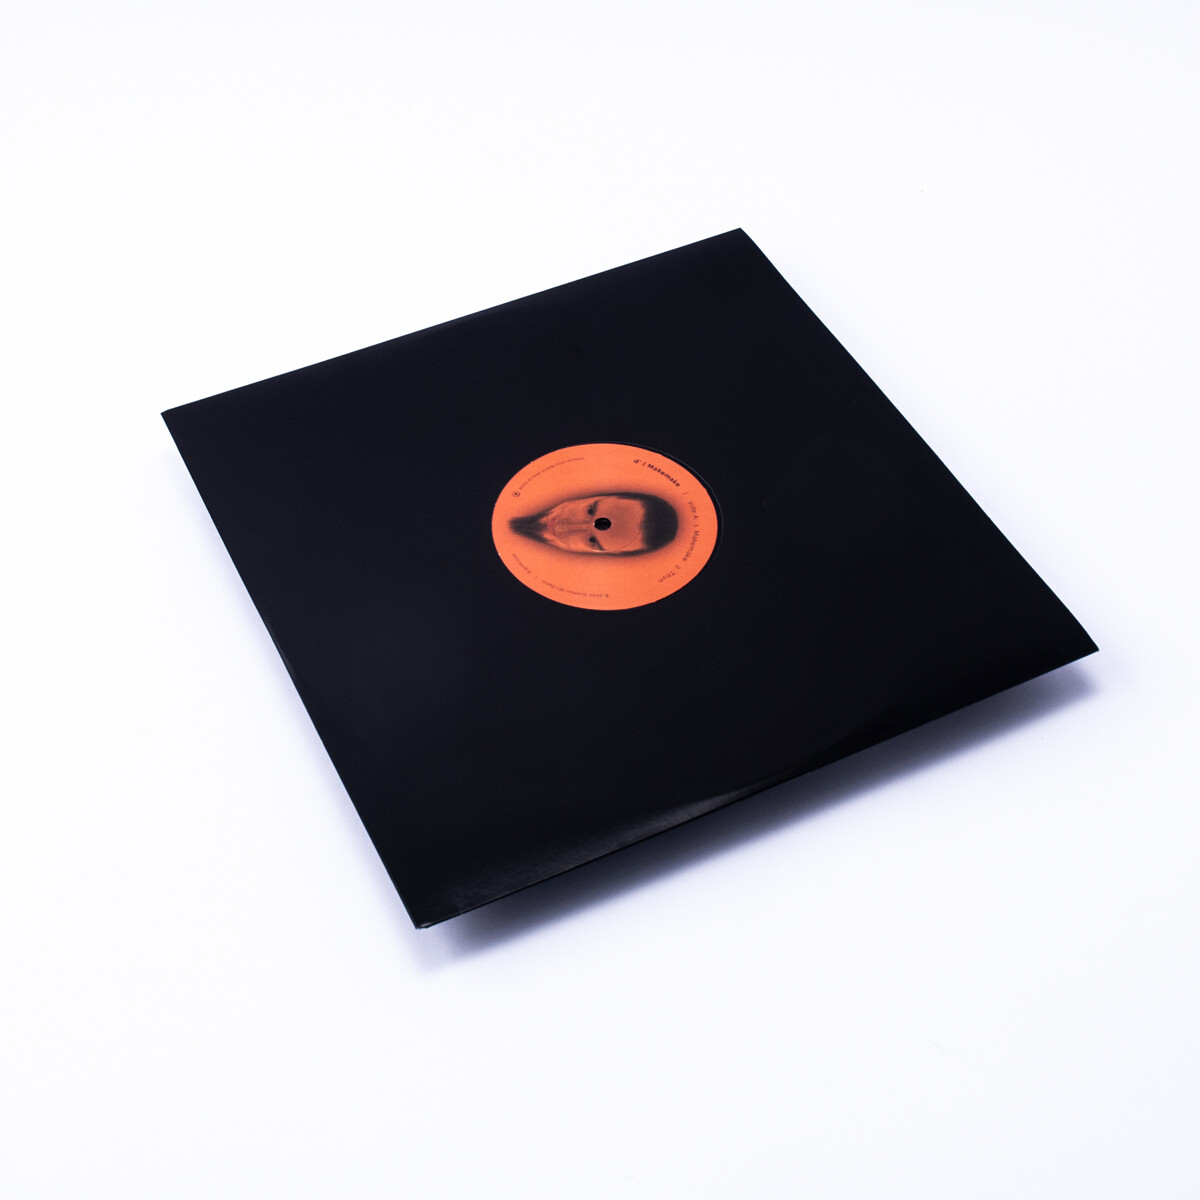 d' - Makemake | ltd. | 12"